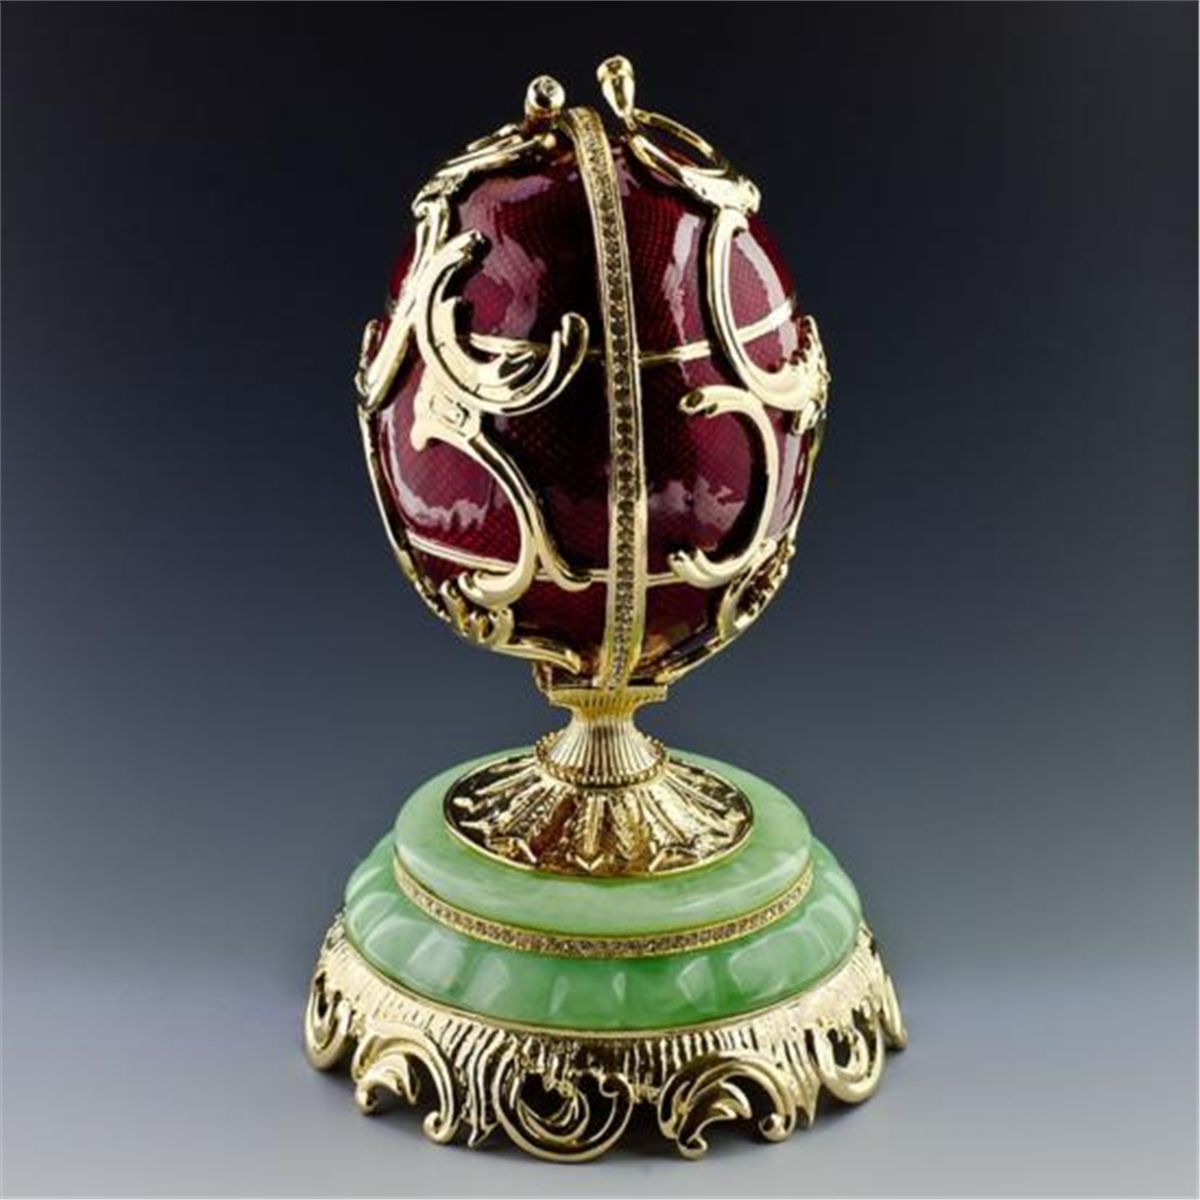 Faberge Opulence & St Petersburgh Hermitage Museum